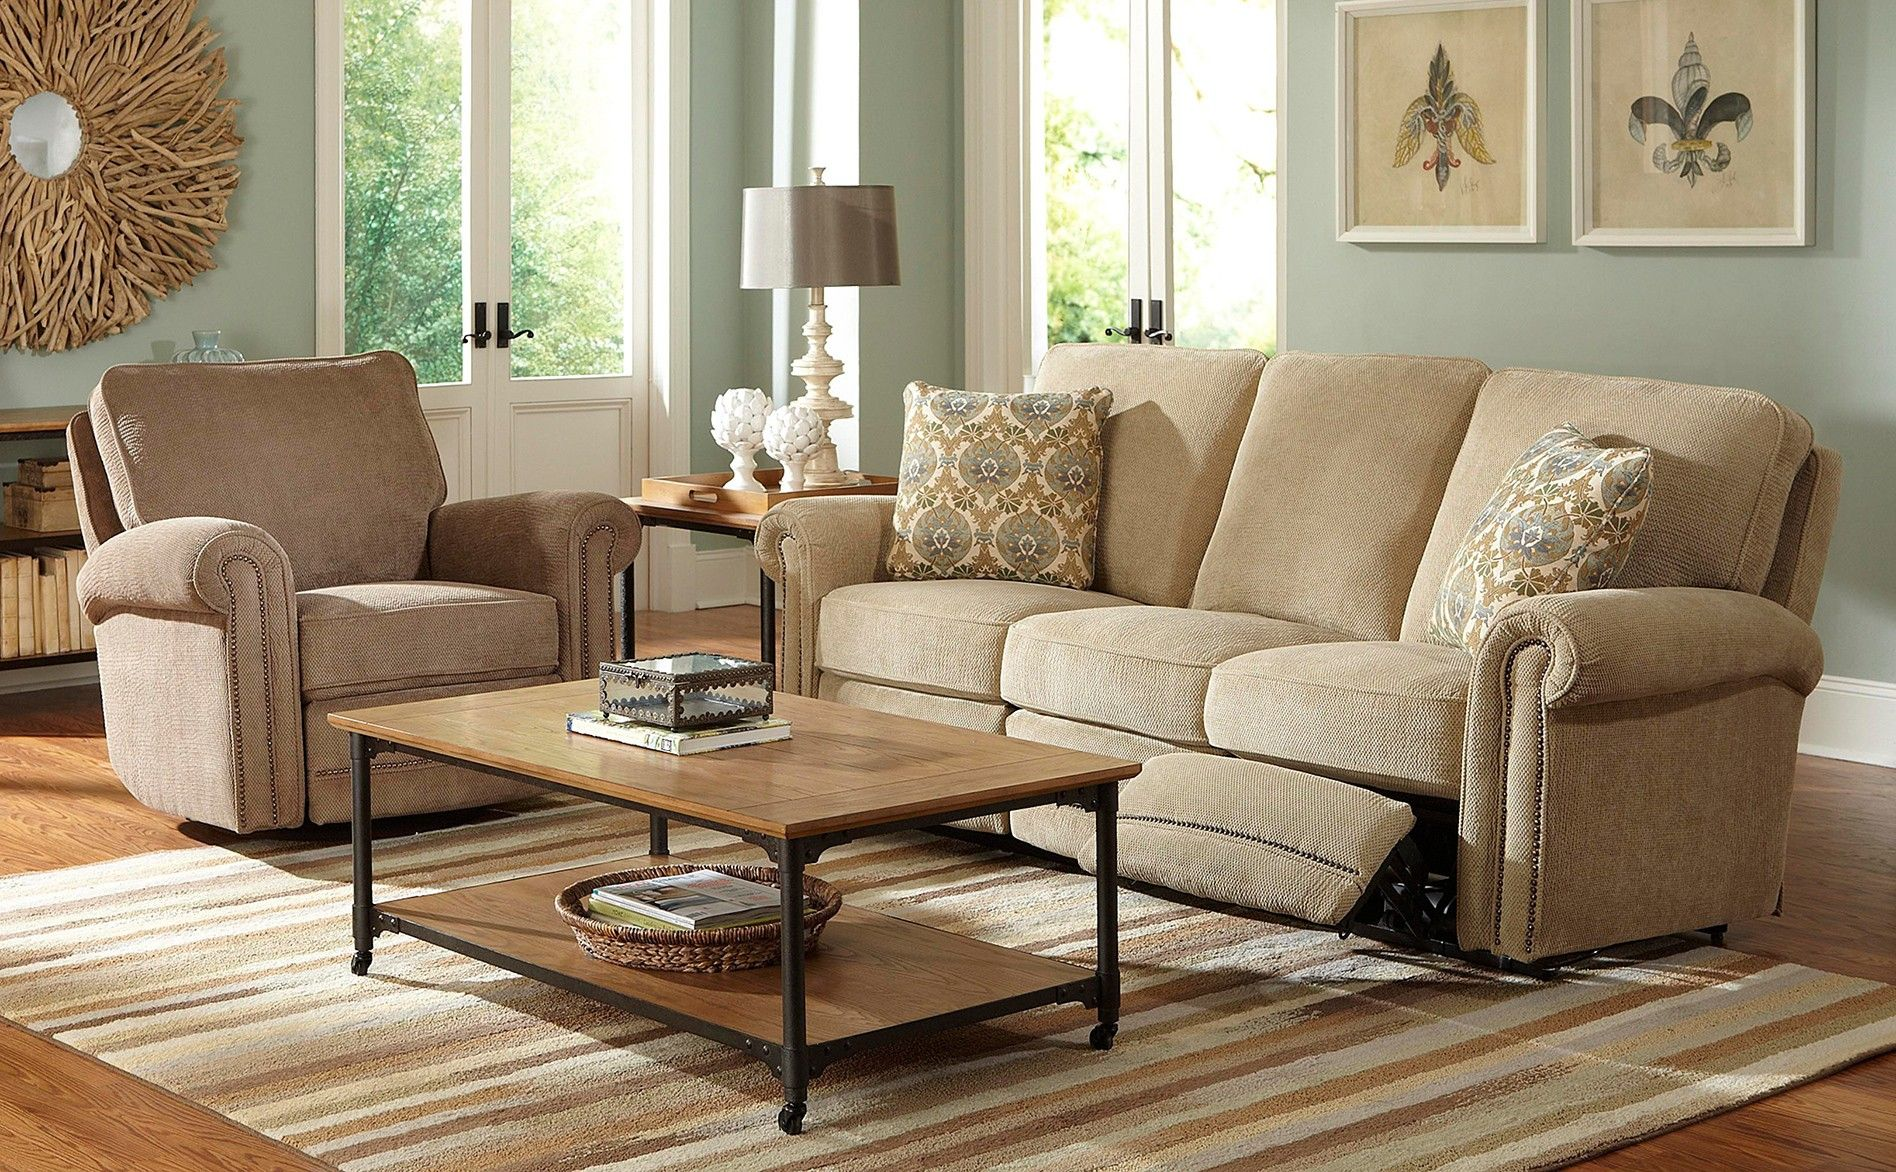 Lane Home Furnishings Leather Sofa And Loveseat From The Bowden Collection Construction Plans Broyhill Jasmine Double Reclining Beautiful Rooms